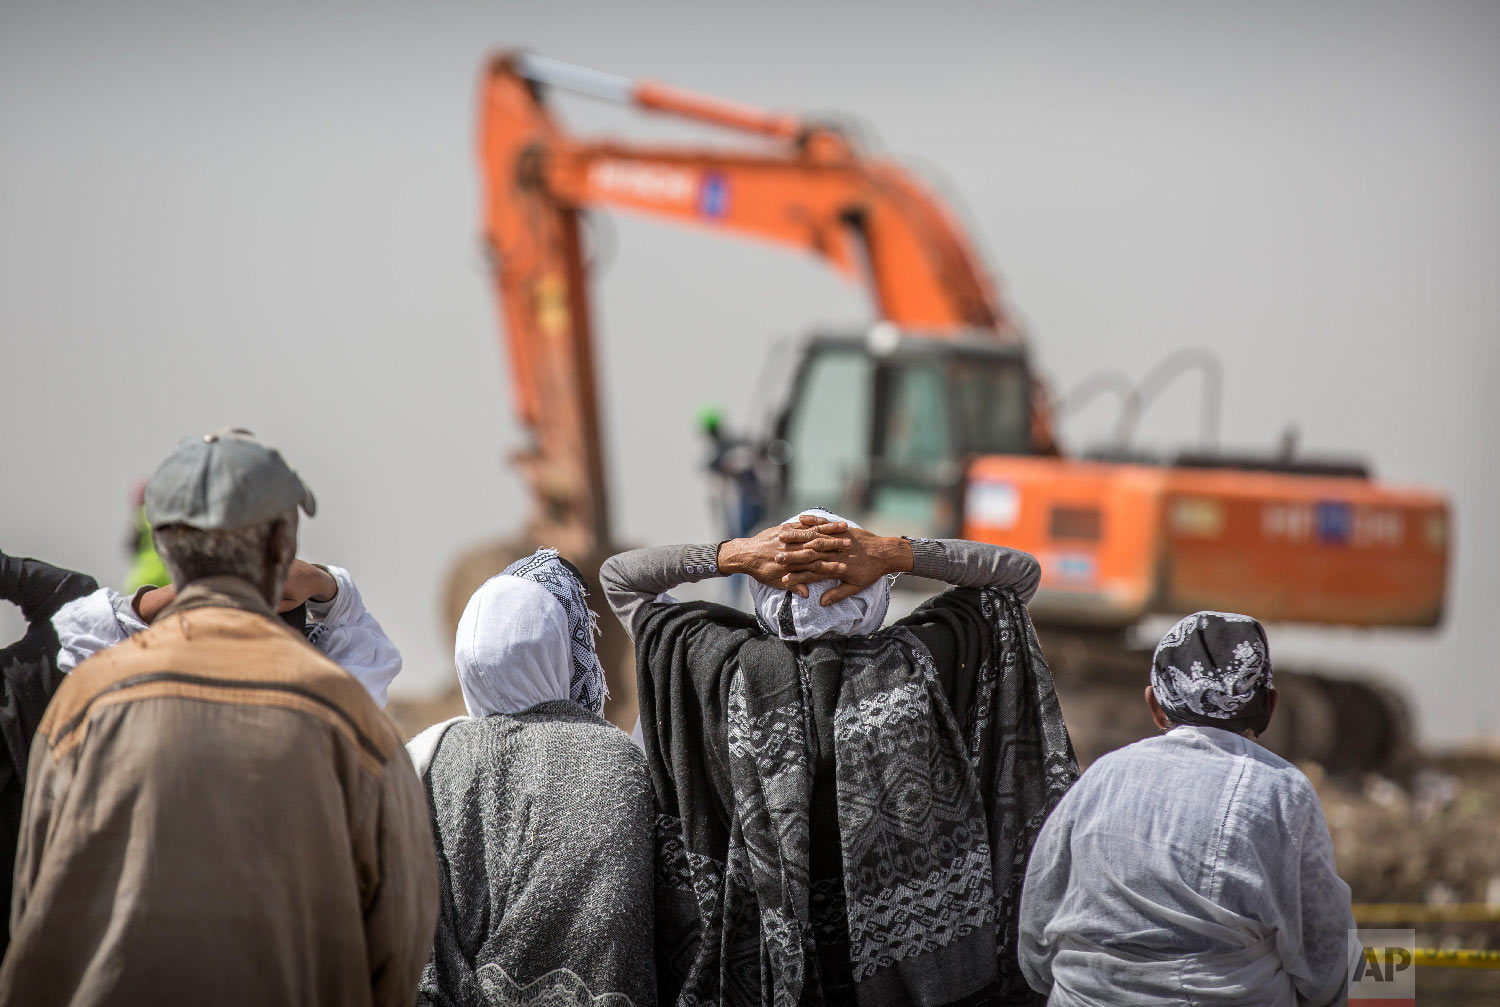 Ethiopian relatives of crash victims mourn as a mechanical digger operates at the scene where the Ethiopian Airlines Boeing 737 Max 8 crashed shortly after takeoff on Sunday near Bishoftu, Ethiopia, March 14, 2019. (AP Photo/Mulugeta Ayene)